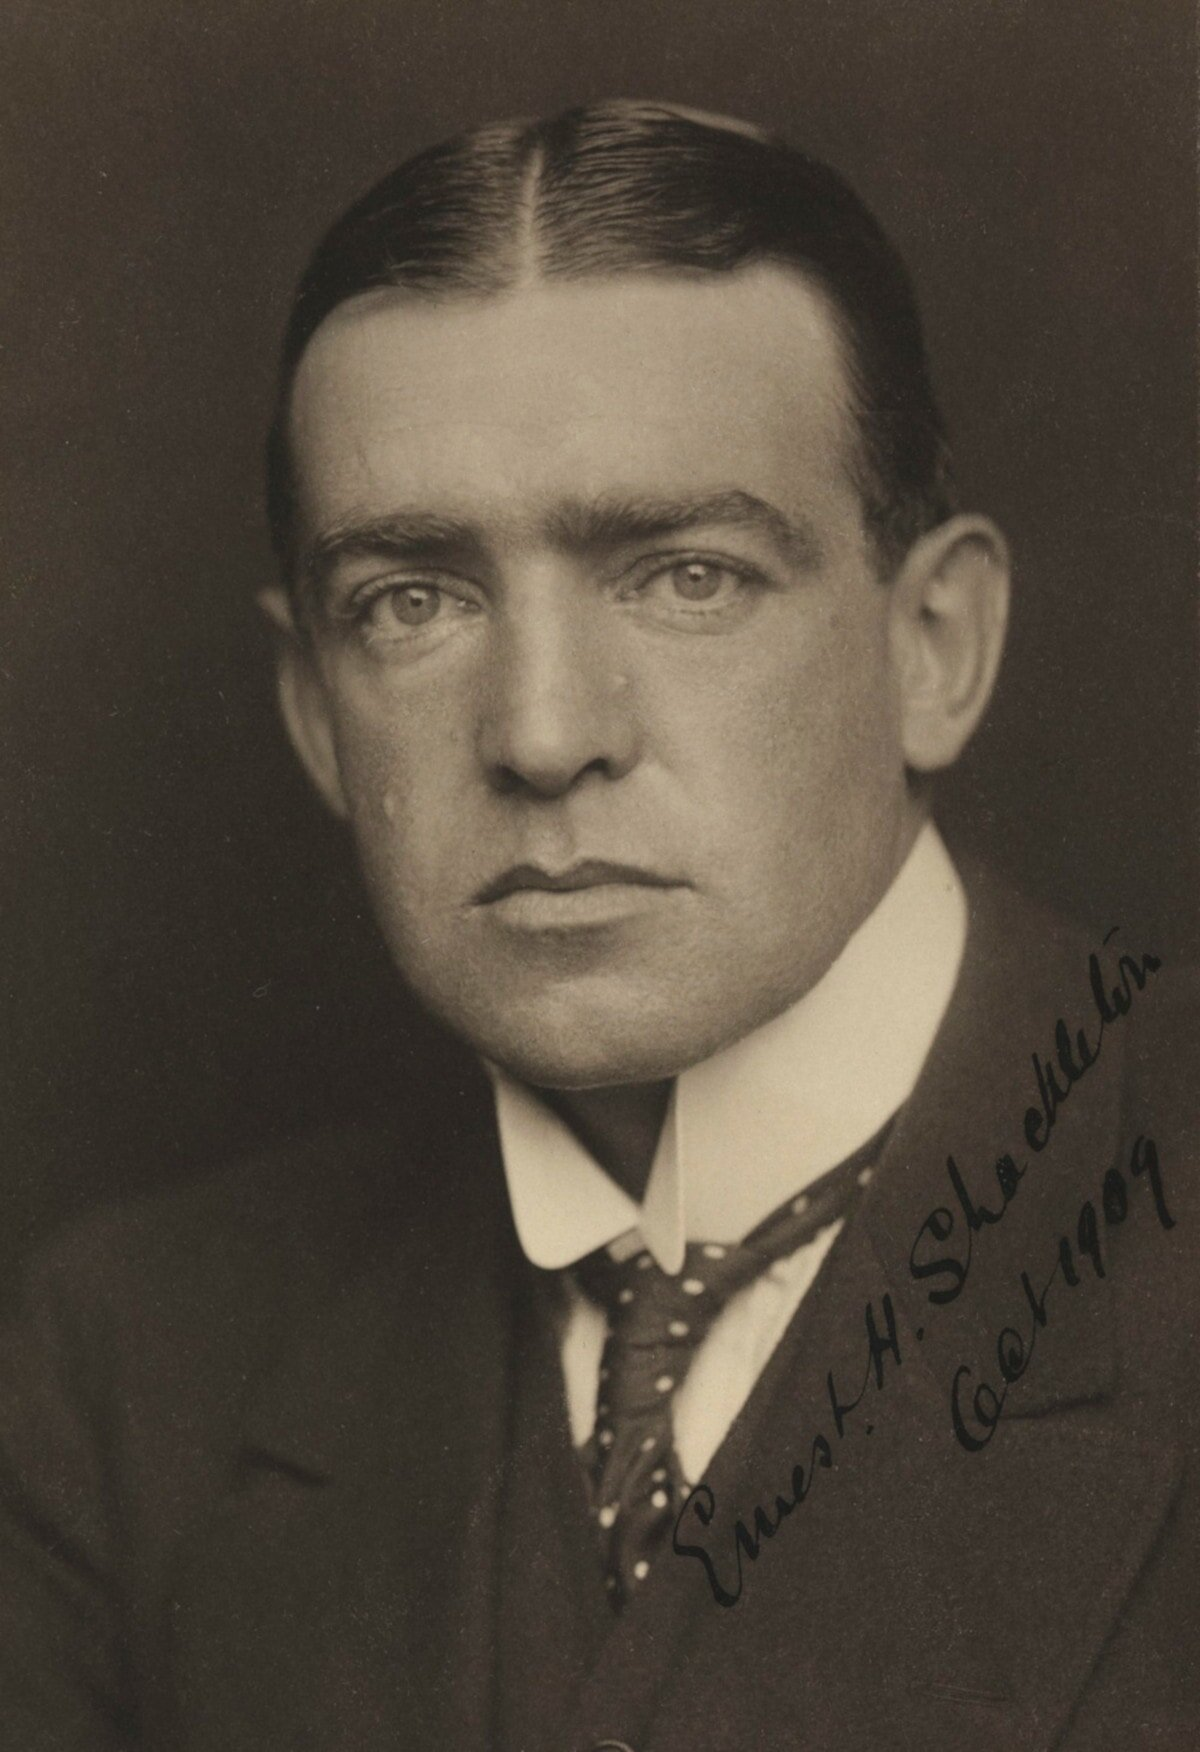 Ernest Shackleton is one of the names of explorers you might recognize!